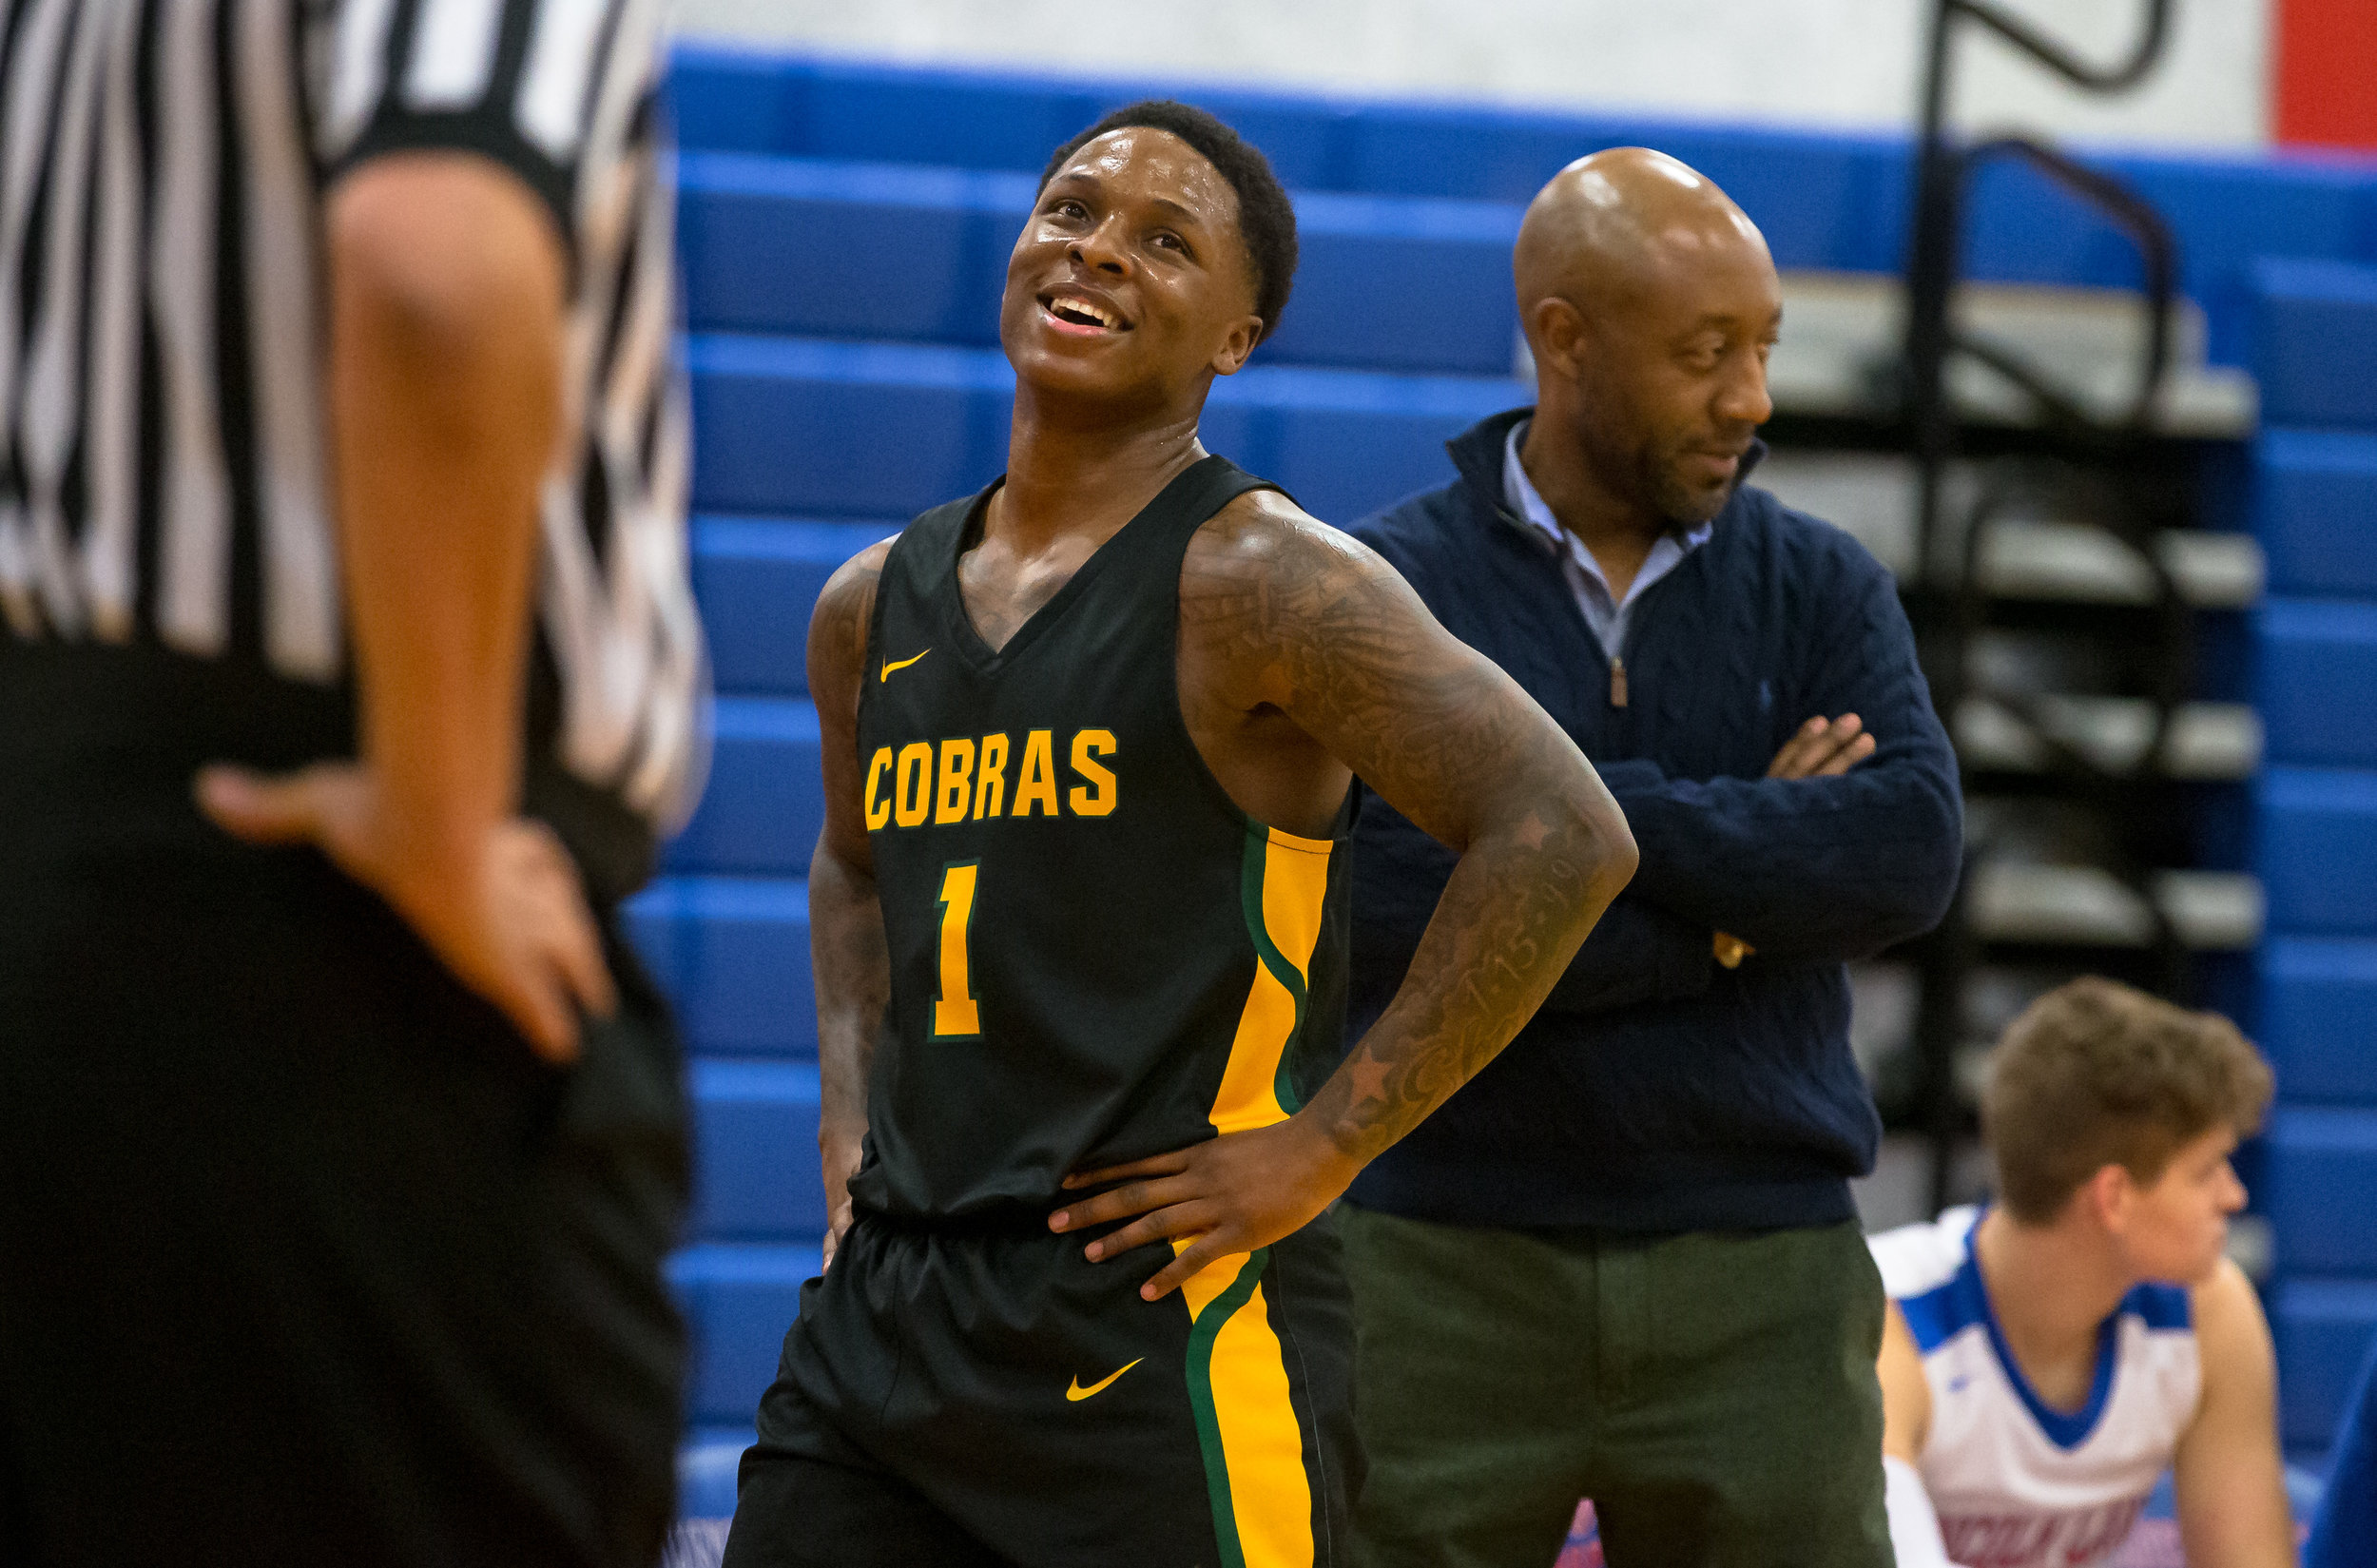 Parkland College's Yaakema Rose Jr. (1) jokes with Lincoln Land Community College men's basketball head coach Chuck Shanklin along the sidelines as the Cobras take on the Loggers in the first half at Lincoln Land Community College's Cass Gymnasium, Wednesday, Feb. 20, 2019, in Springfield, Ill. [Justin L. Fowler/The State Journal-Register]